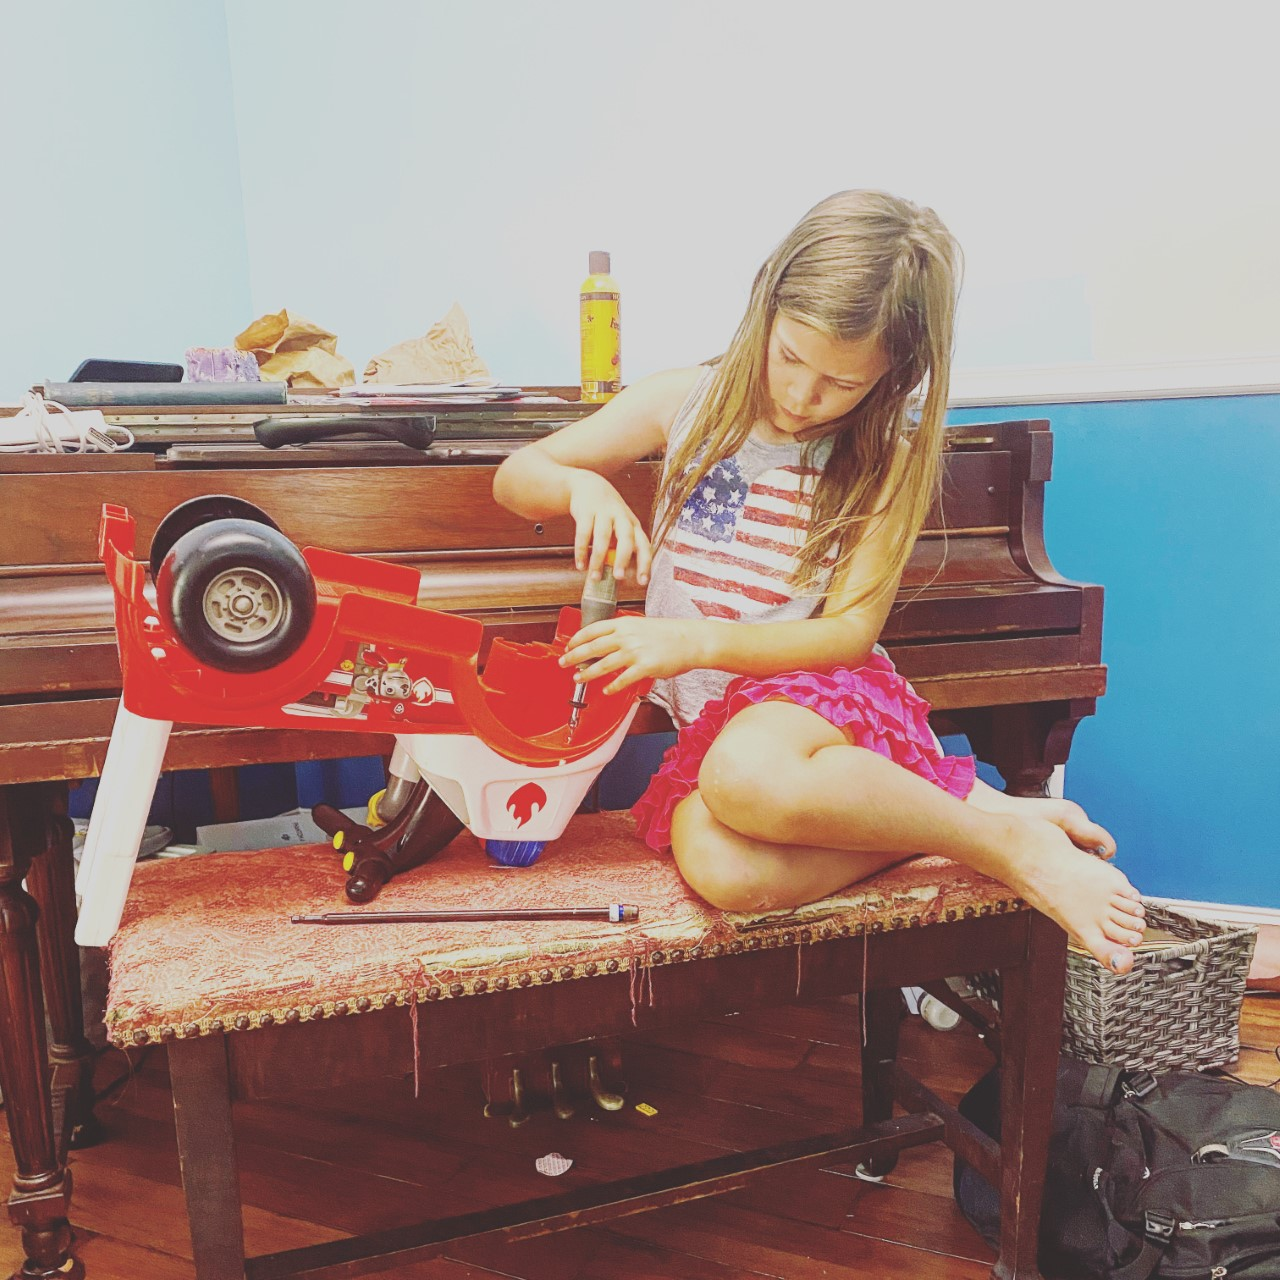 photo of girl using a screwdriver on a toy truck